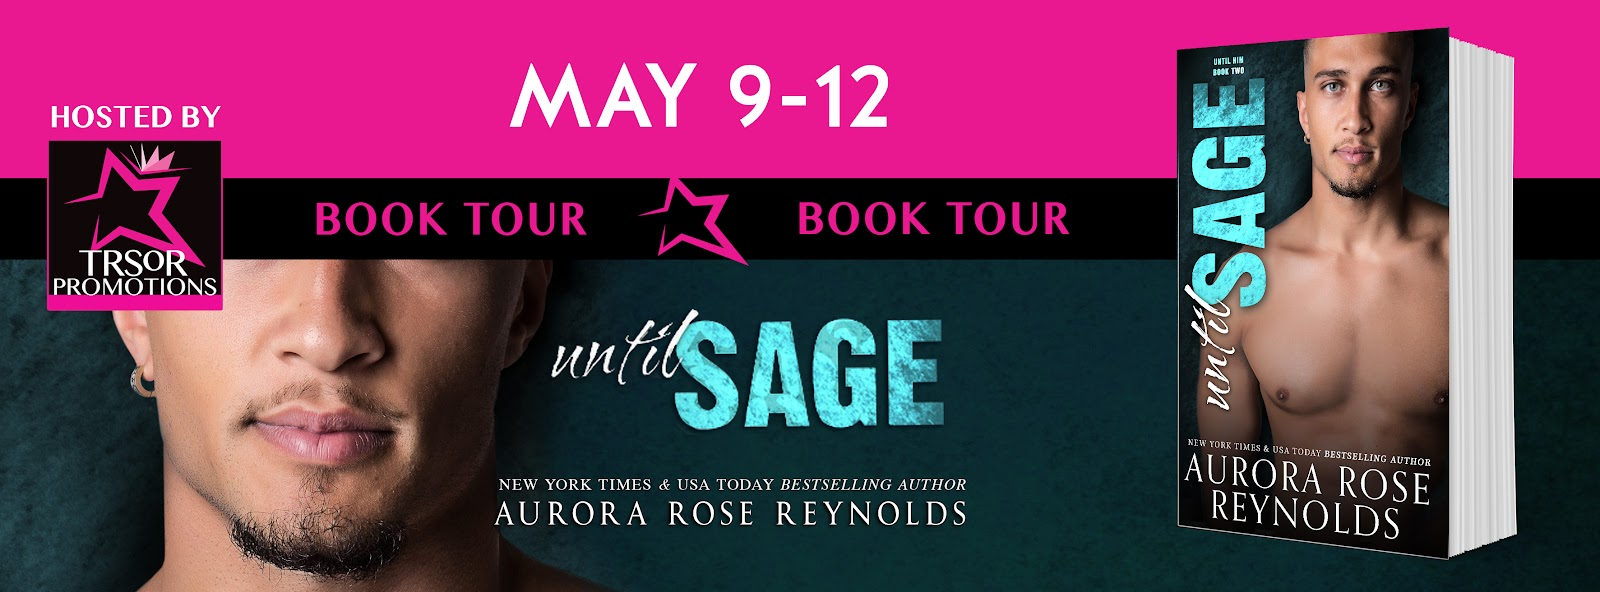 UNTIL_SAGE_BOOK_TOUR.jpg